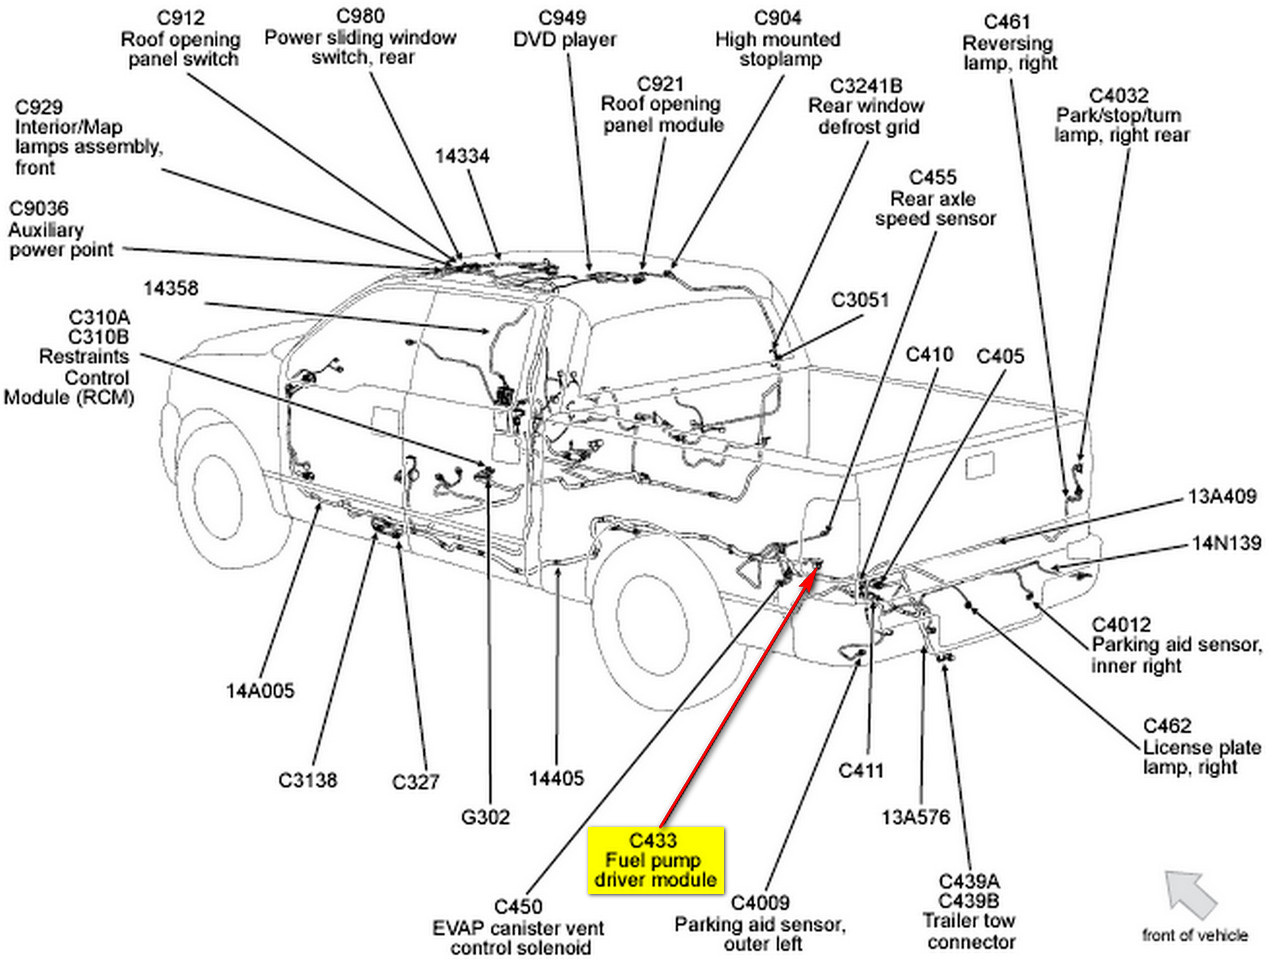 hight resolution of 1998 ford f150 xlt fuel tank diagram wiring diagram 1998 ford f150 fuel tank diagram